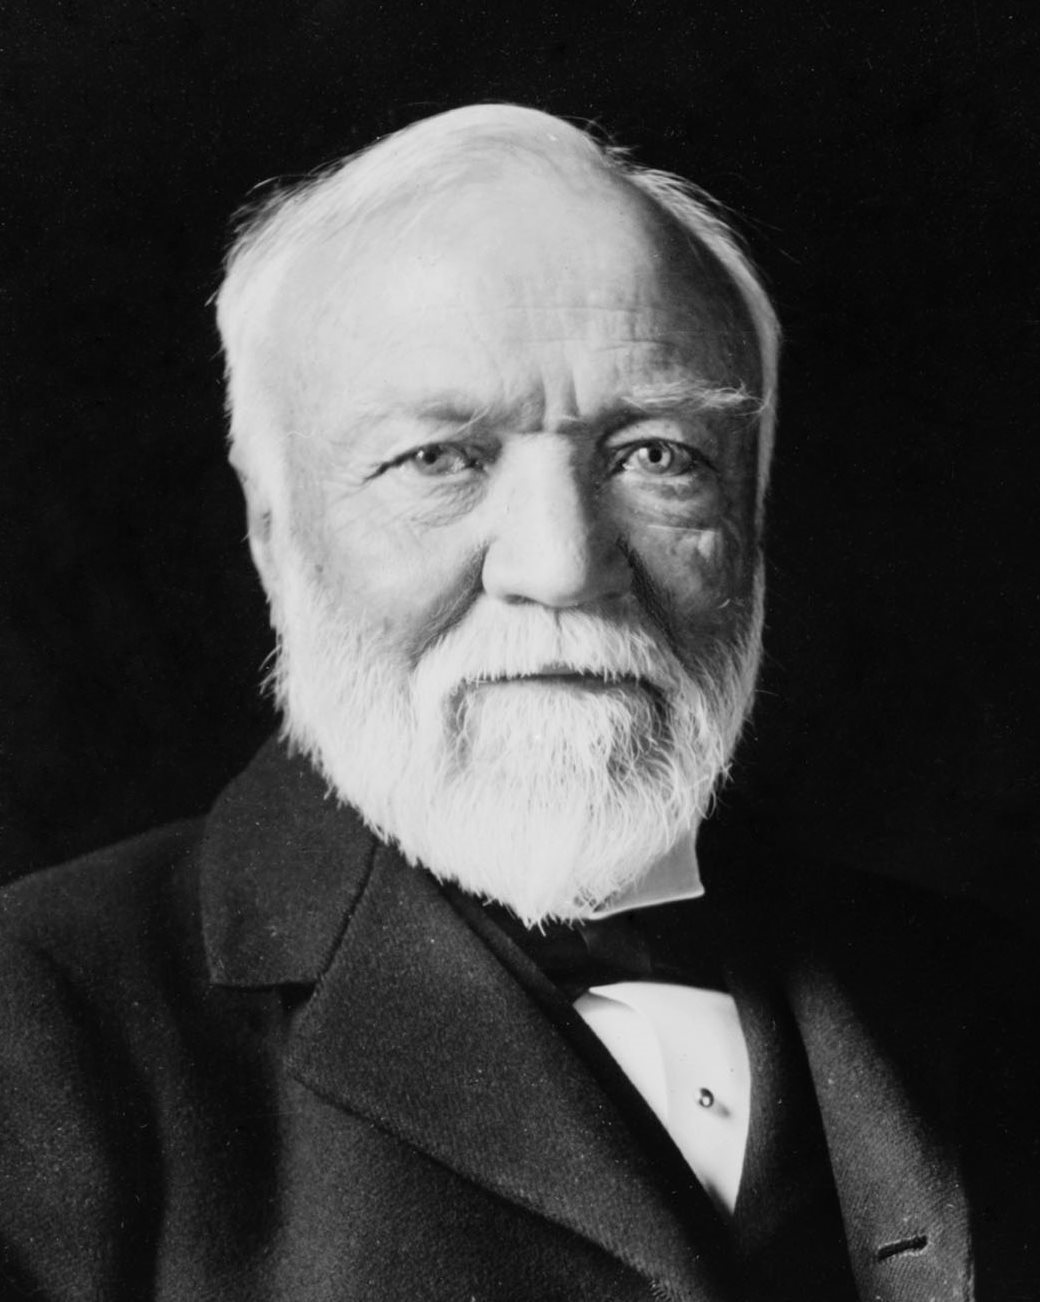 http://upload.wikimedia.org/wikipedia/commons/0/09/Andrew_Carnegie%2C_three-quarter_length_portrait%2C_seated%2C_facing_slightly_left%2C_1913-crop.jpg